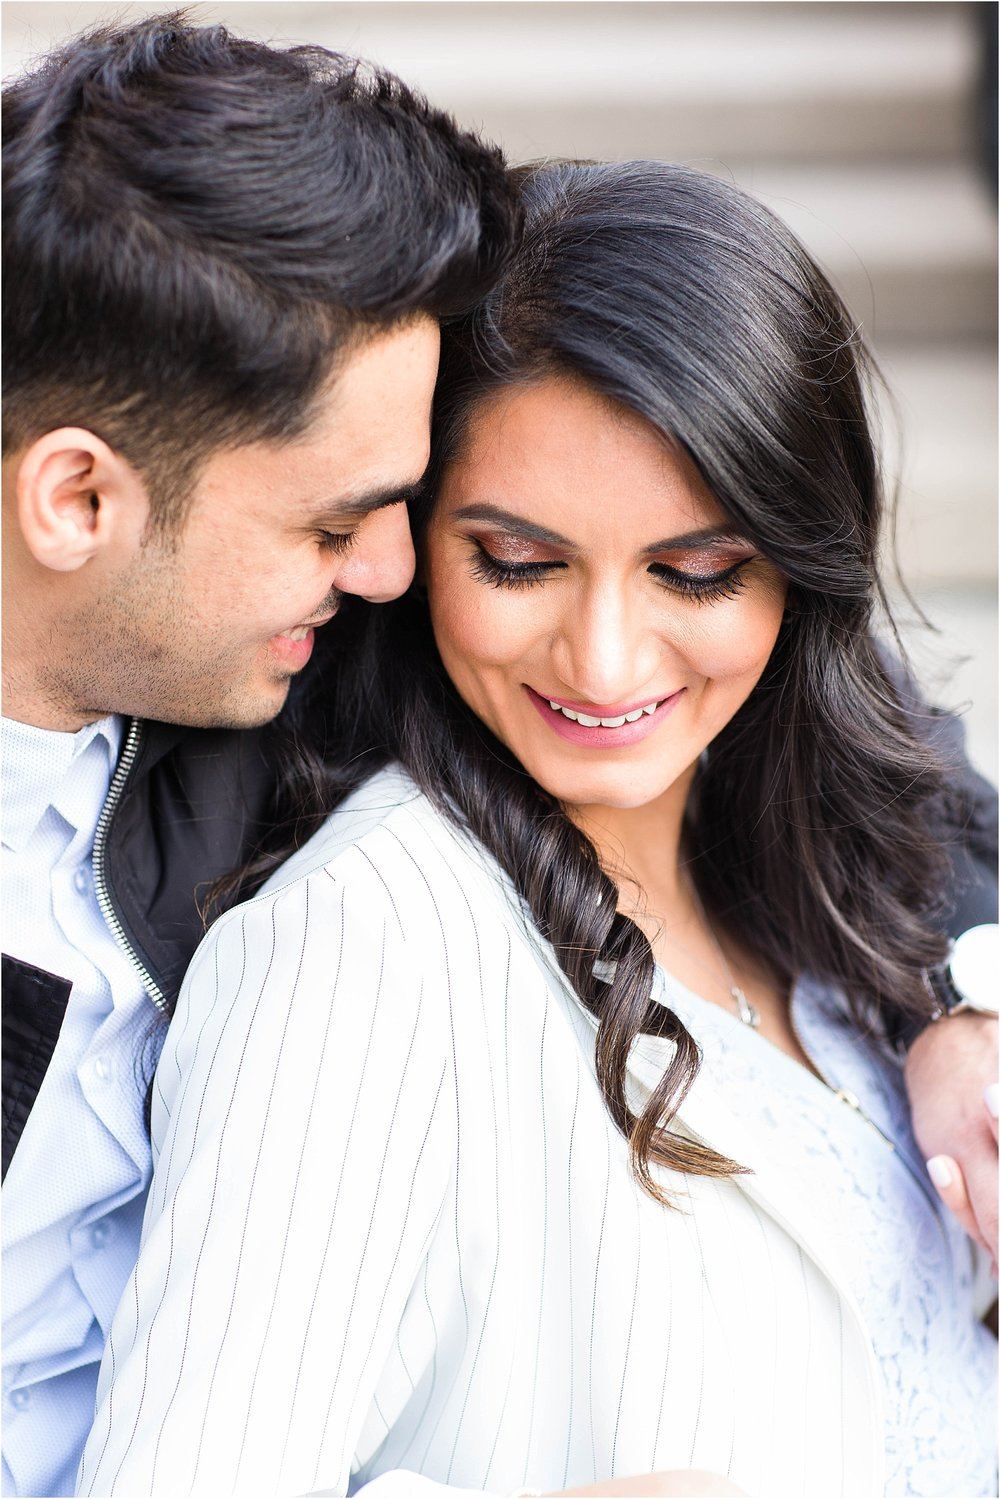 Ryerson-University-Humber-Bay-Bridge-Engagement-Session-Toronto-Mississauga-Brampton-Scarborough-GTA-Pakistani-Indian-Wedding-Engagement-Photographer-Photography_0007.jpg